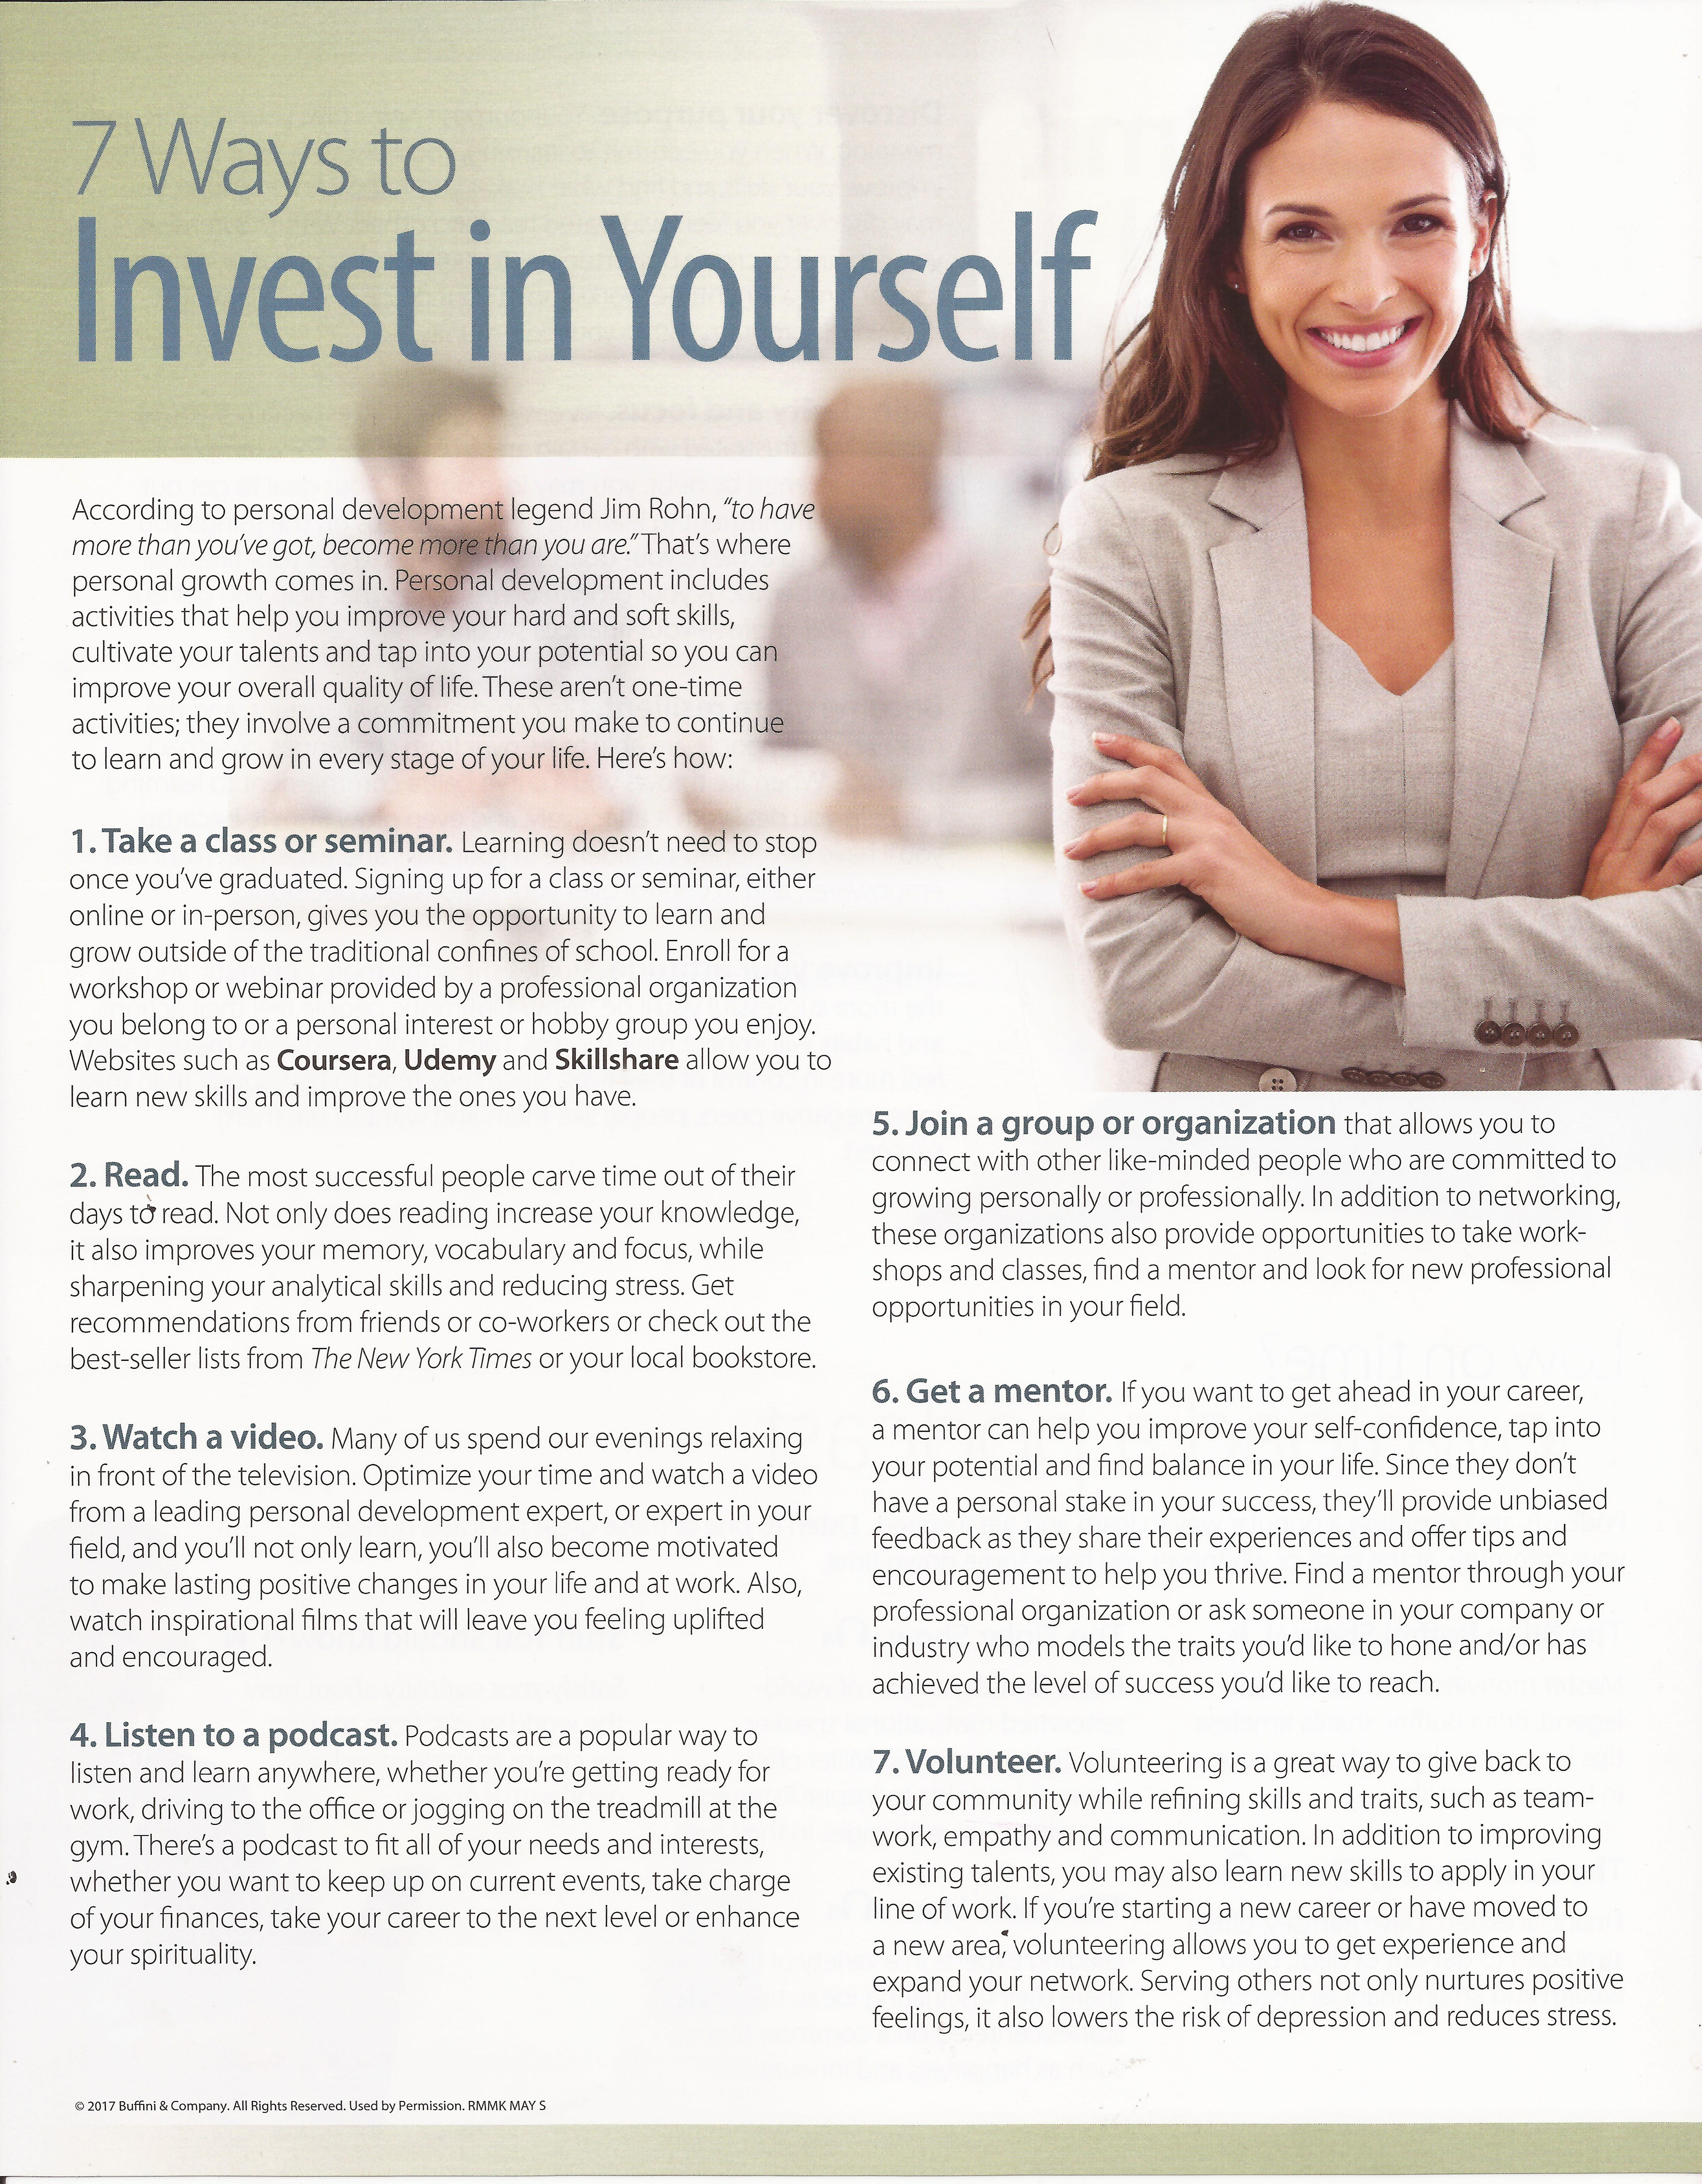 7 Ways to Invest in Yourself | Lori Wakefield REALTOR | www.AustinRealEstateGroup.com